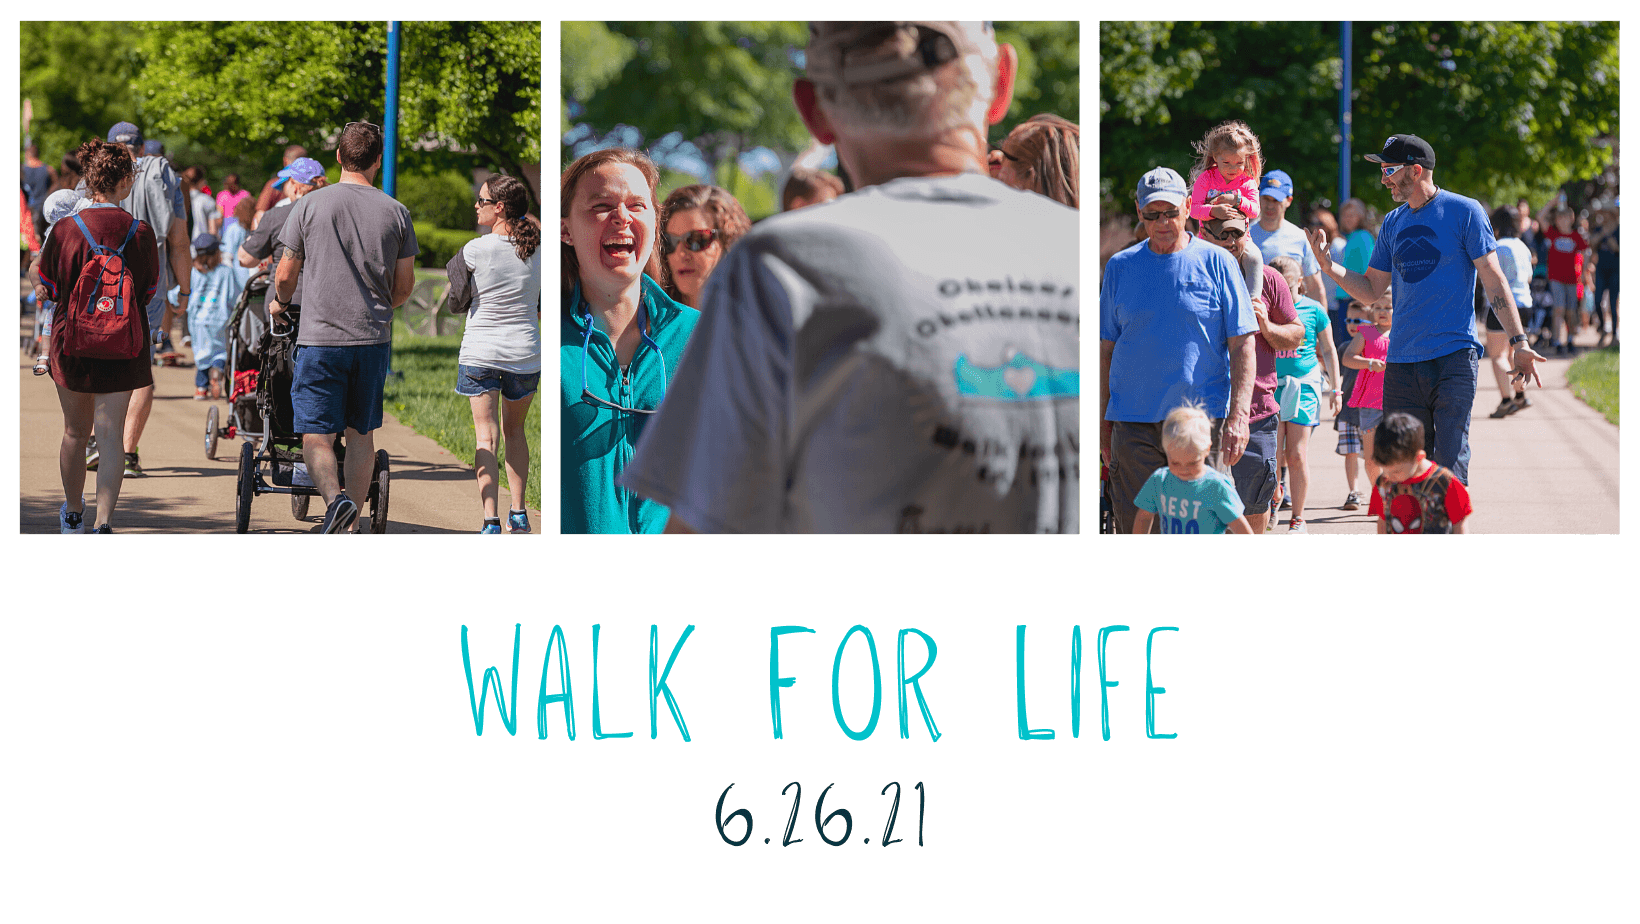 Collage of attendees at Choices Walk for Life